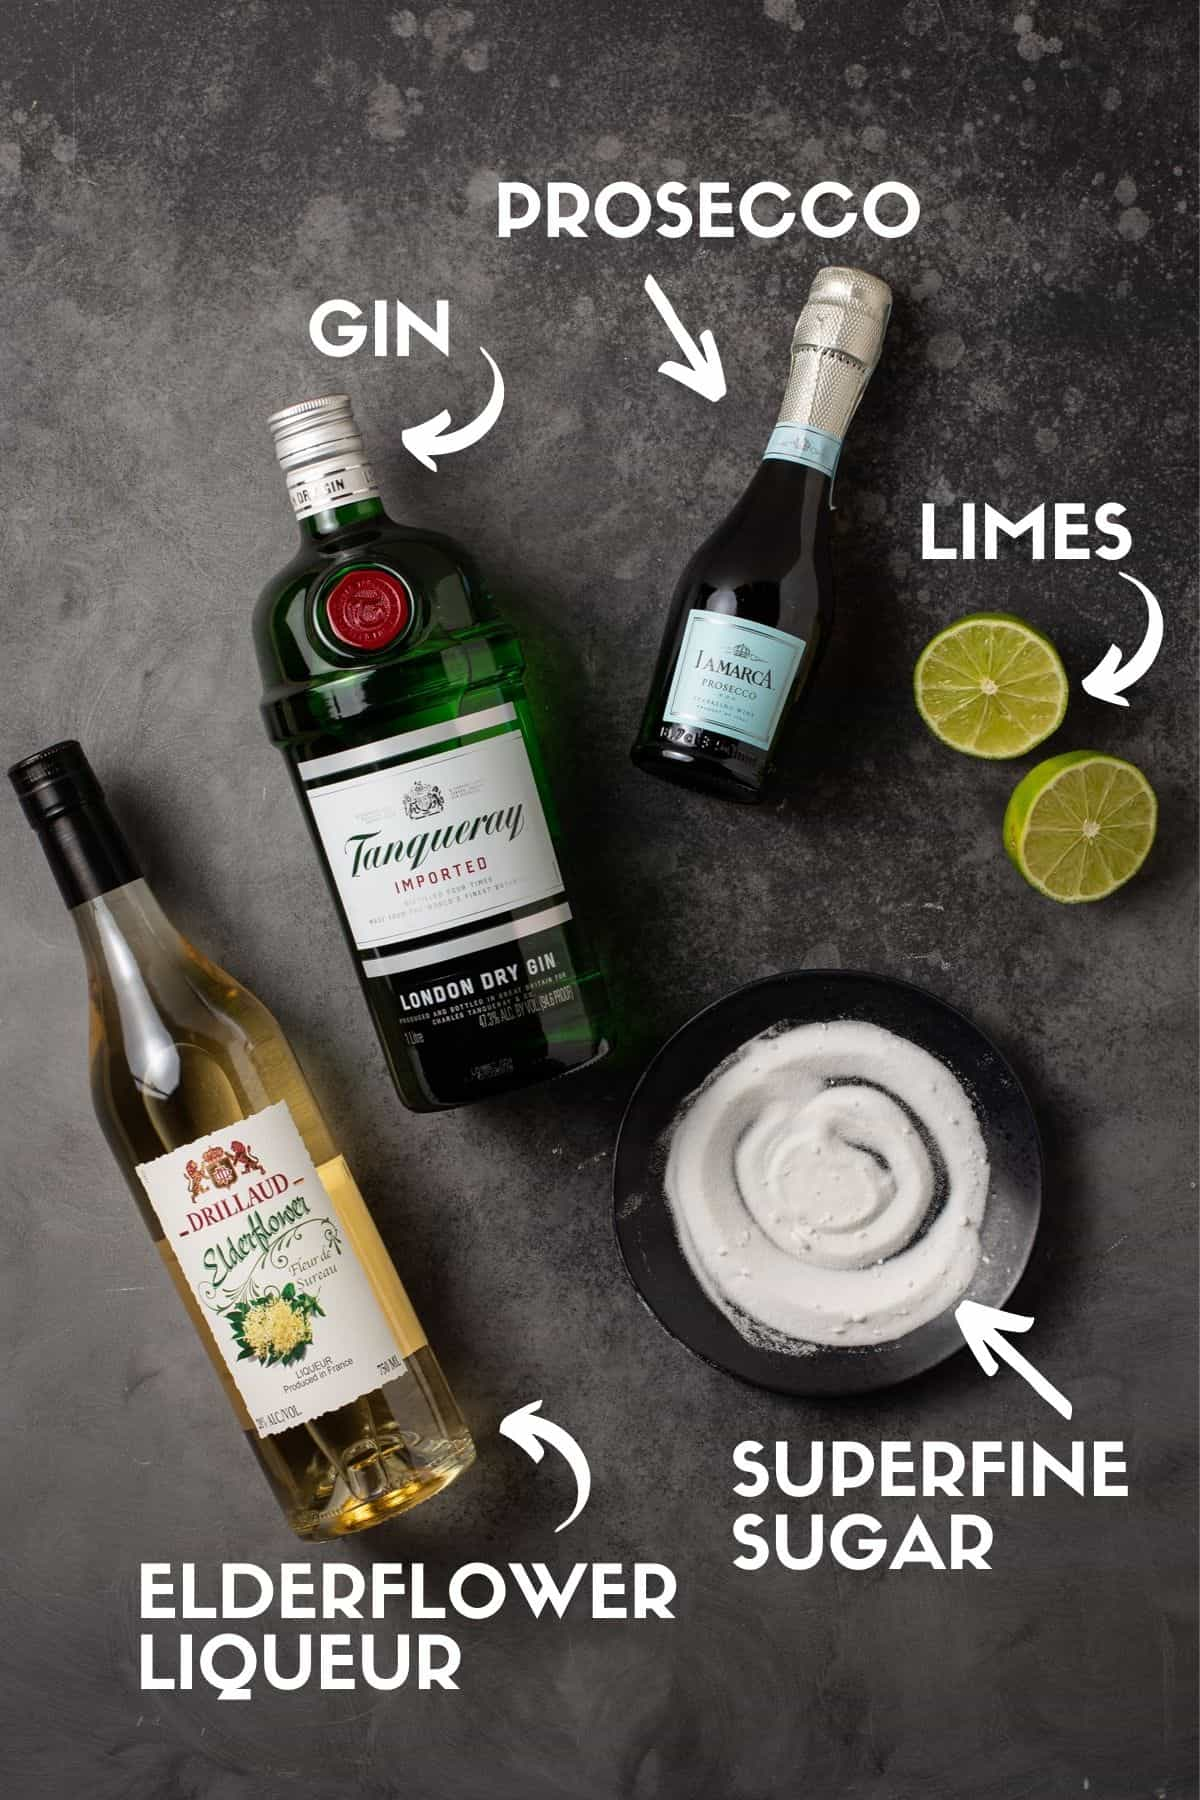 elderflower, superfine sugar, limes, prosecco and gin on a black surface.